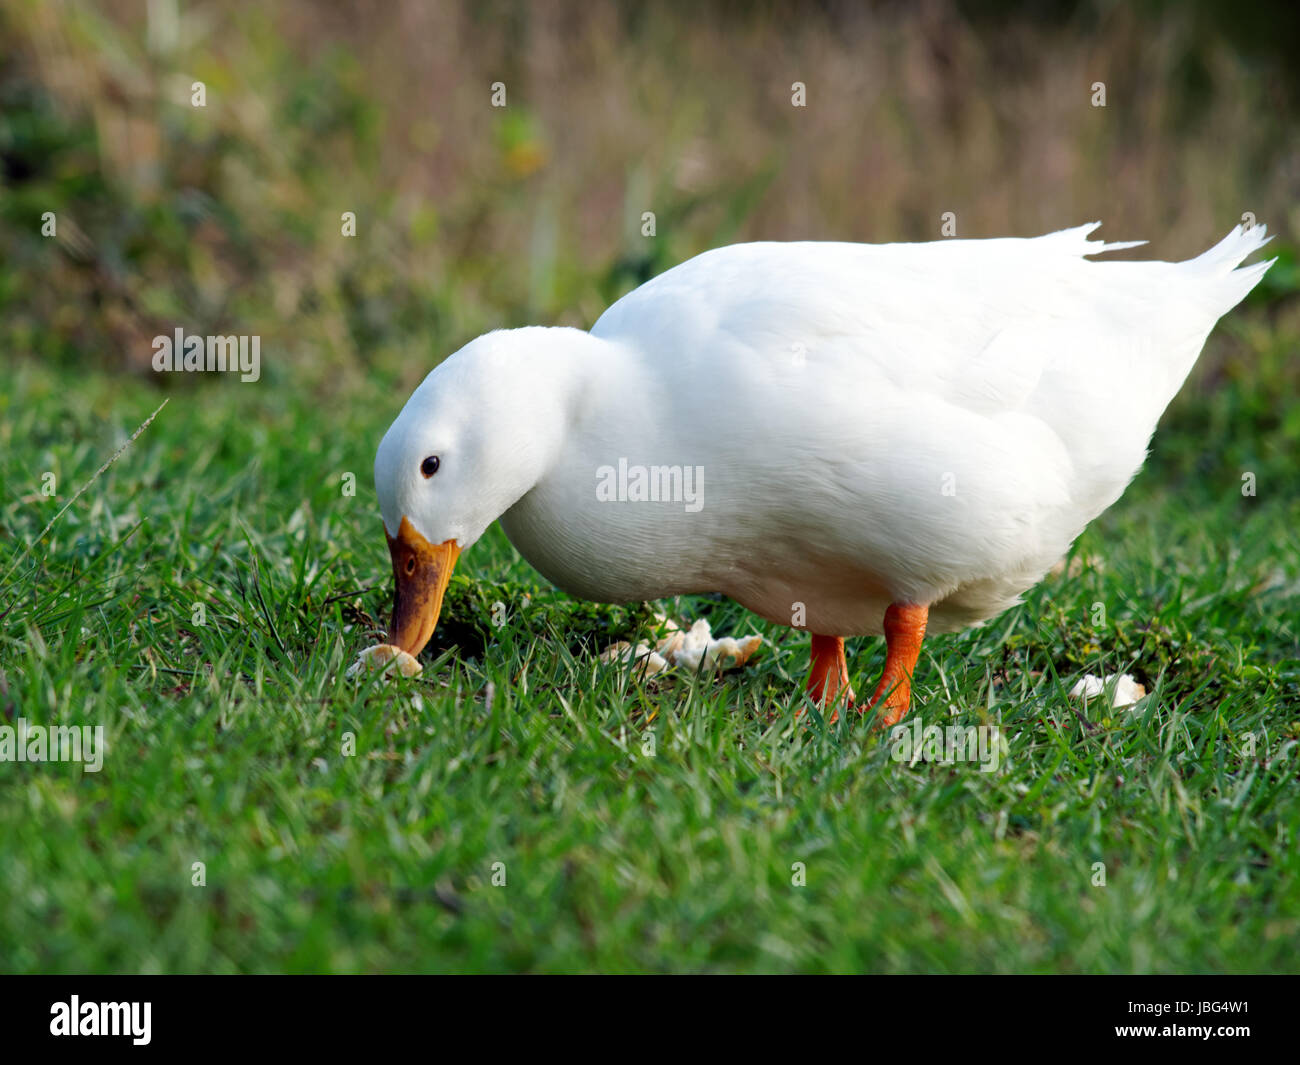 American Pekin Duck with bread on grass in a park. Stock Photo